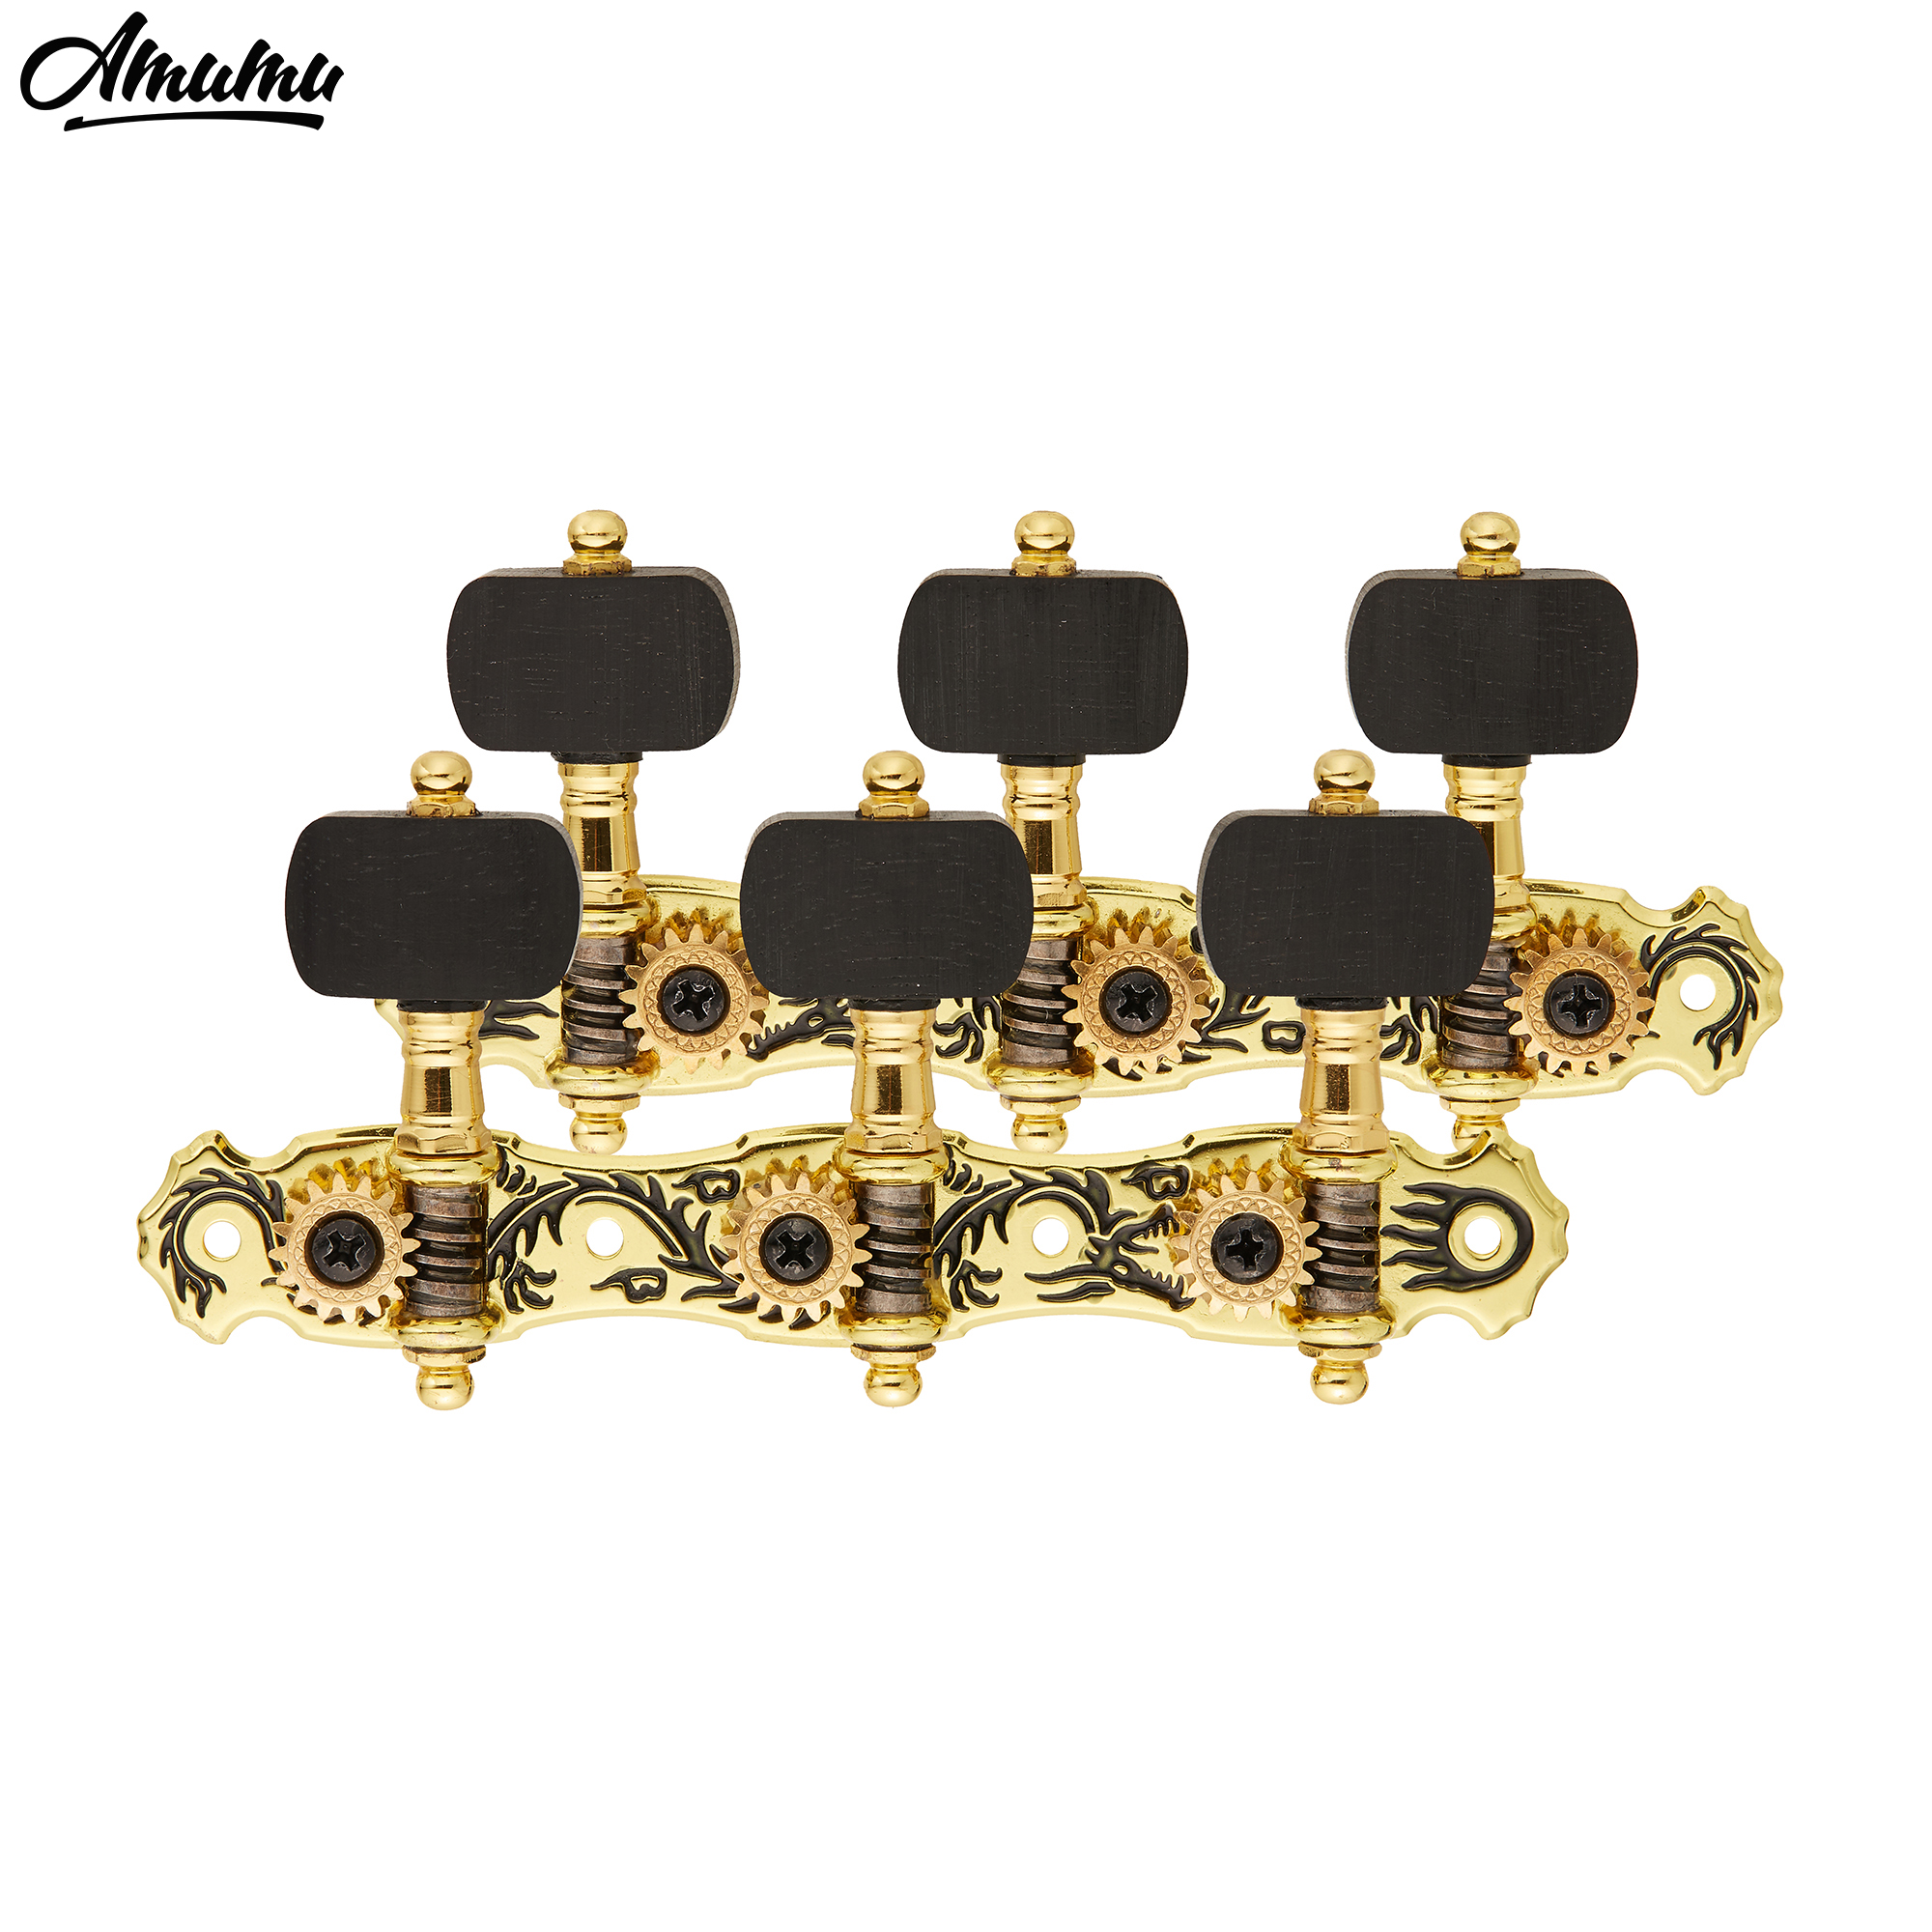 Gold Plated Black Dragon Guitar Machine Heads Classical Guitar Tuning Pegs Tuner Keys with Ebony Knob  3L and 3R sews alice aos 020b1p 2pcs left right classical guitar tuning key plated peg tuner machine head string tuner